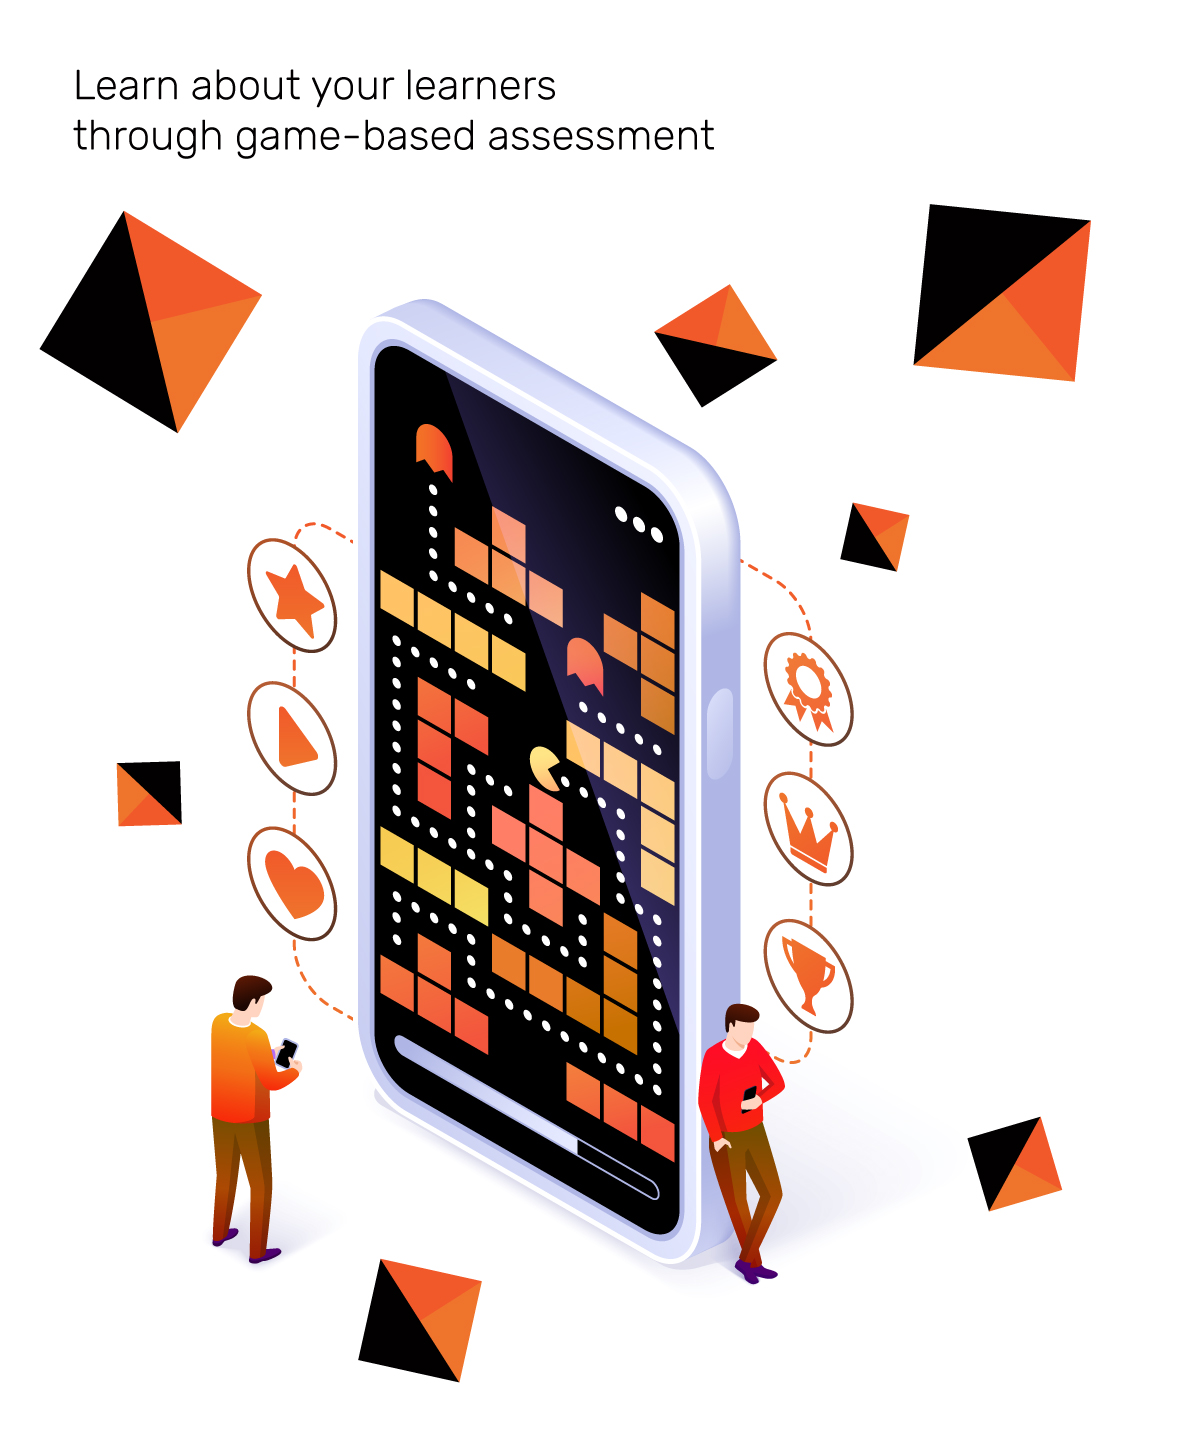 Learn about your learners through game-based assessment